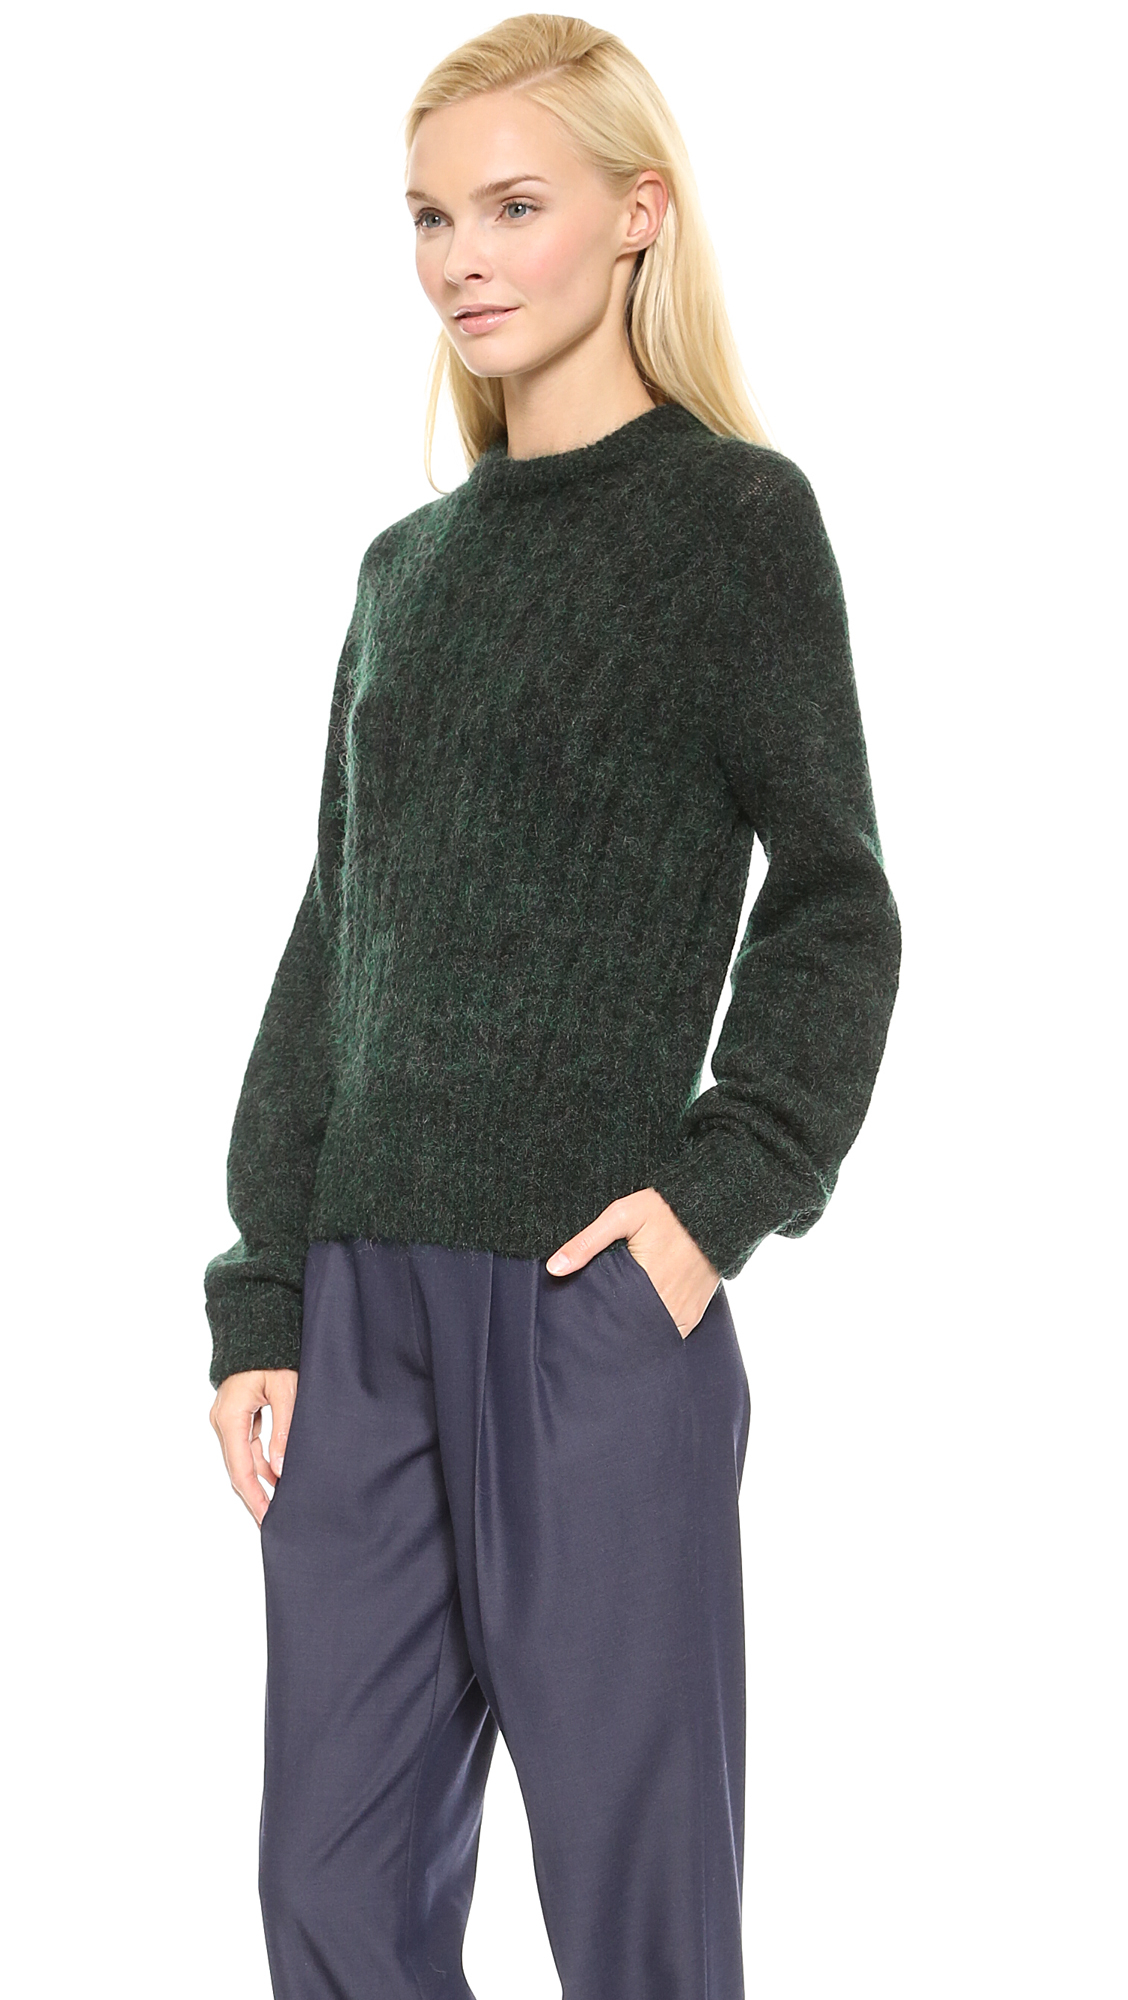 lyst acne studios dania mohair sweater white in green. Black Bedroom Furniture Sets. Home Design Ideas